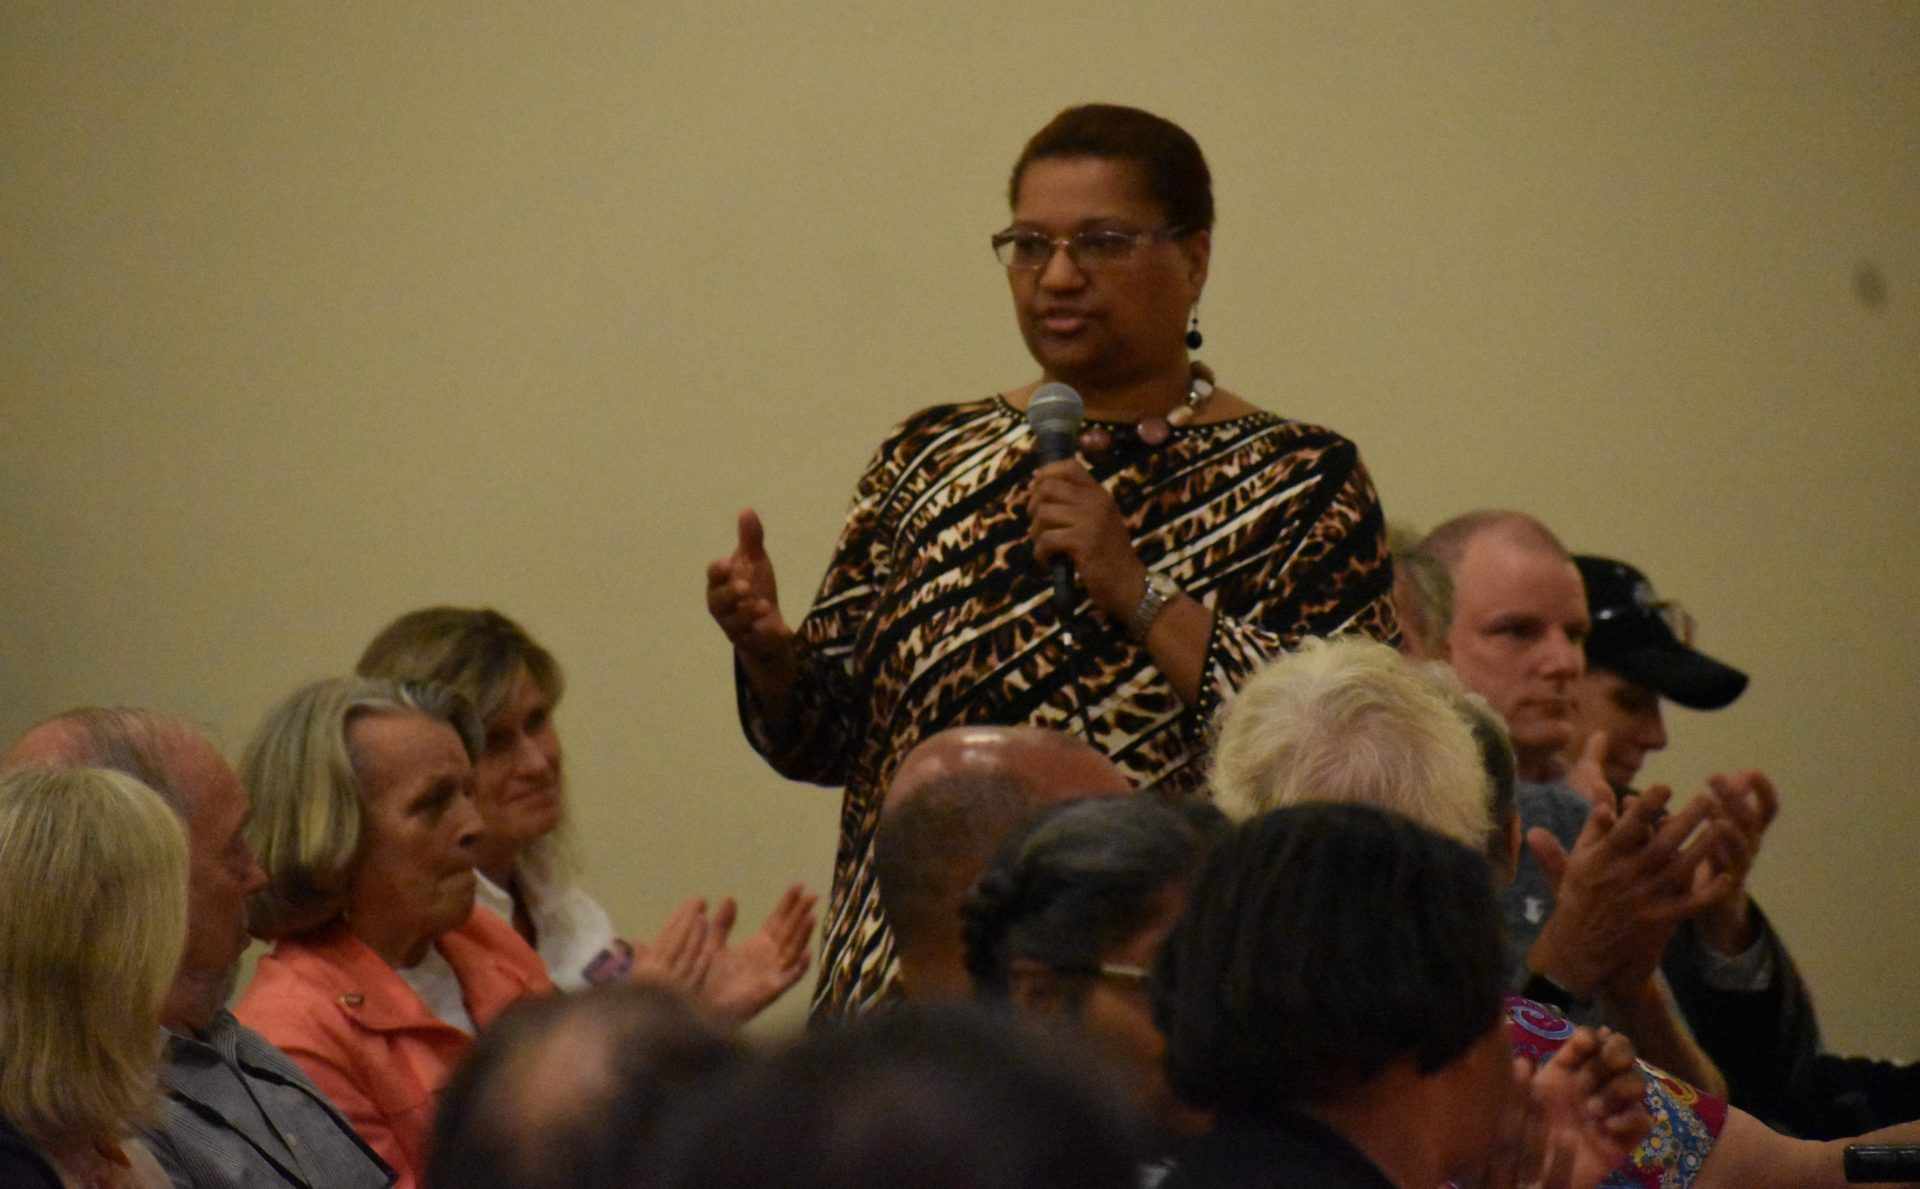 The Rev. Ramona Kinard, one of the organizers of the 10,000 Acts of Kindness initiative, speaks at a community event on April 23, 2019.